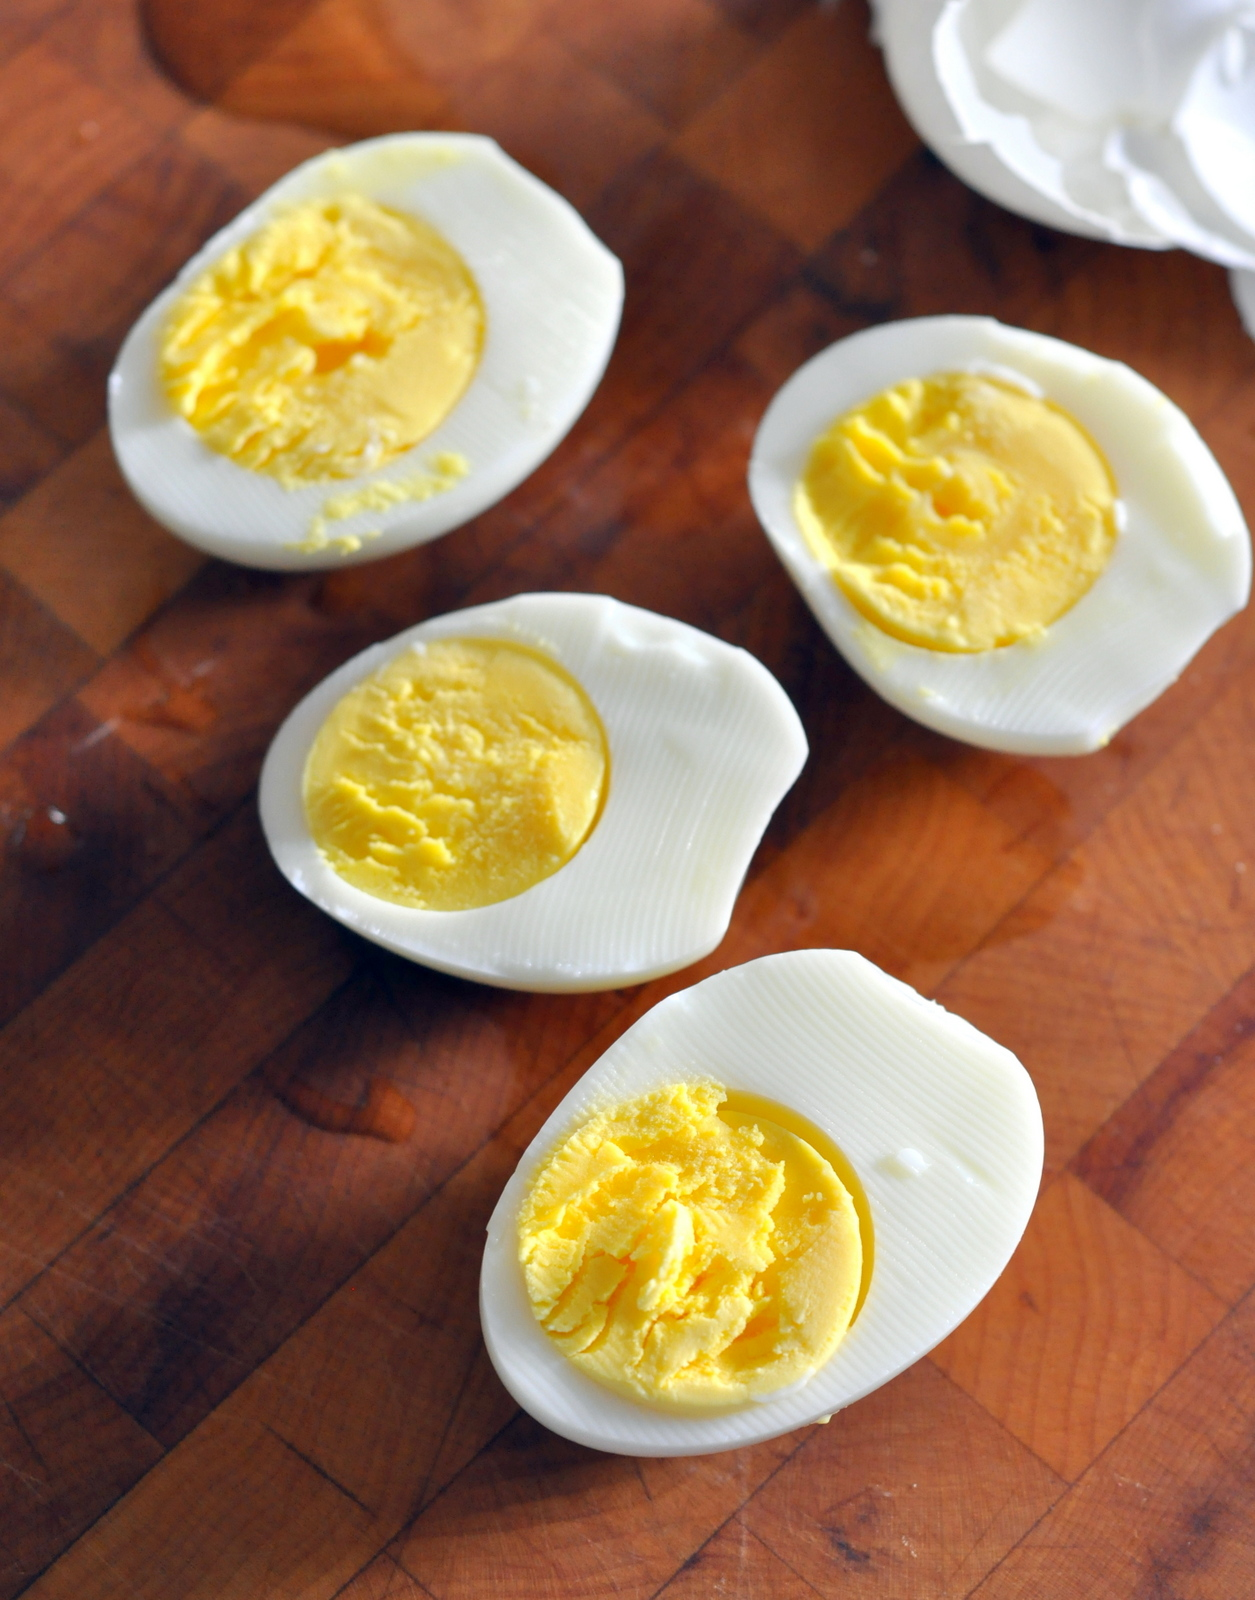 How To: Boil Eggs